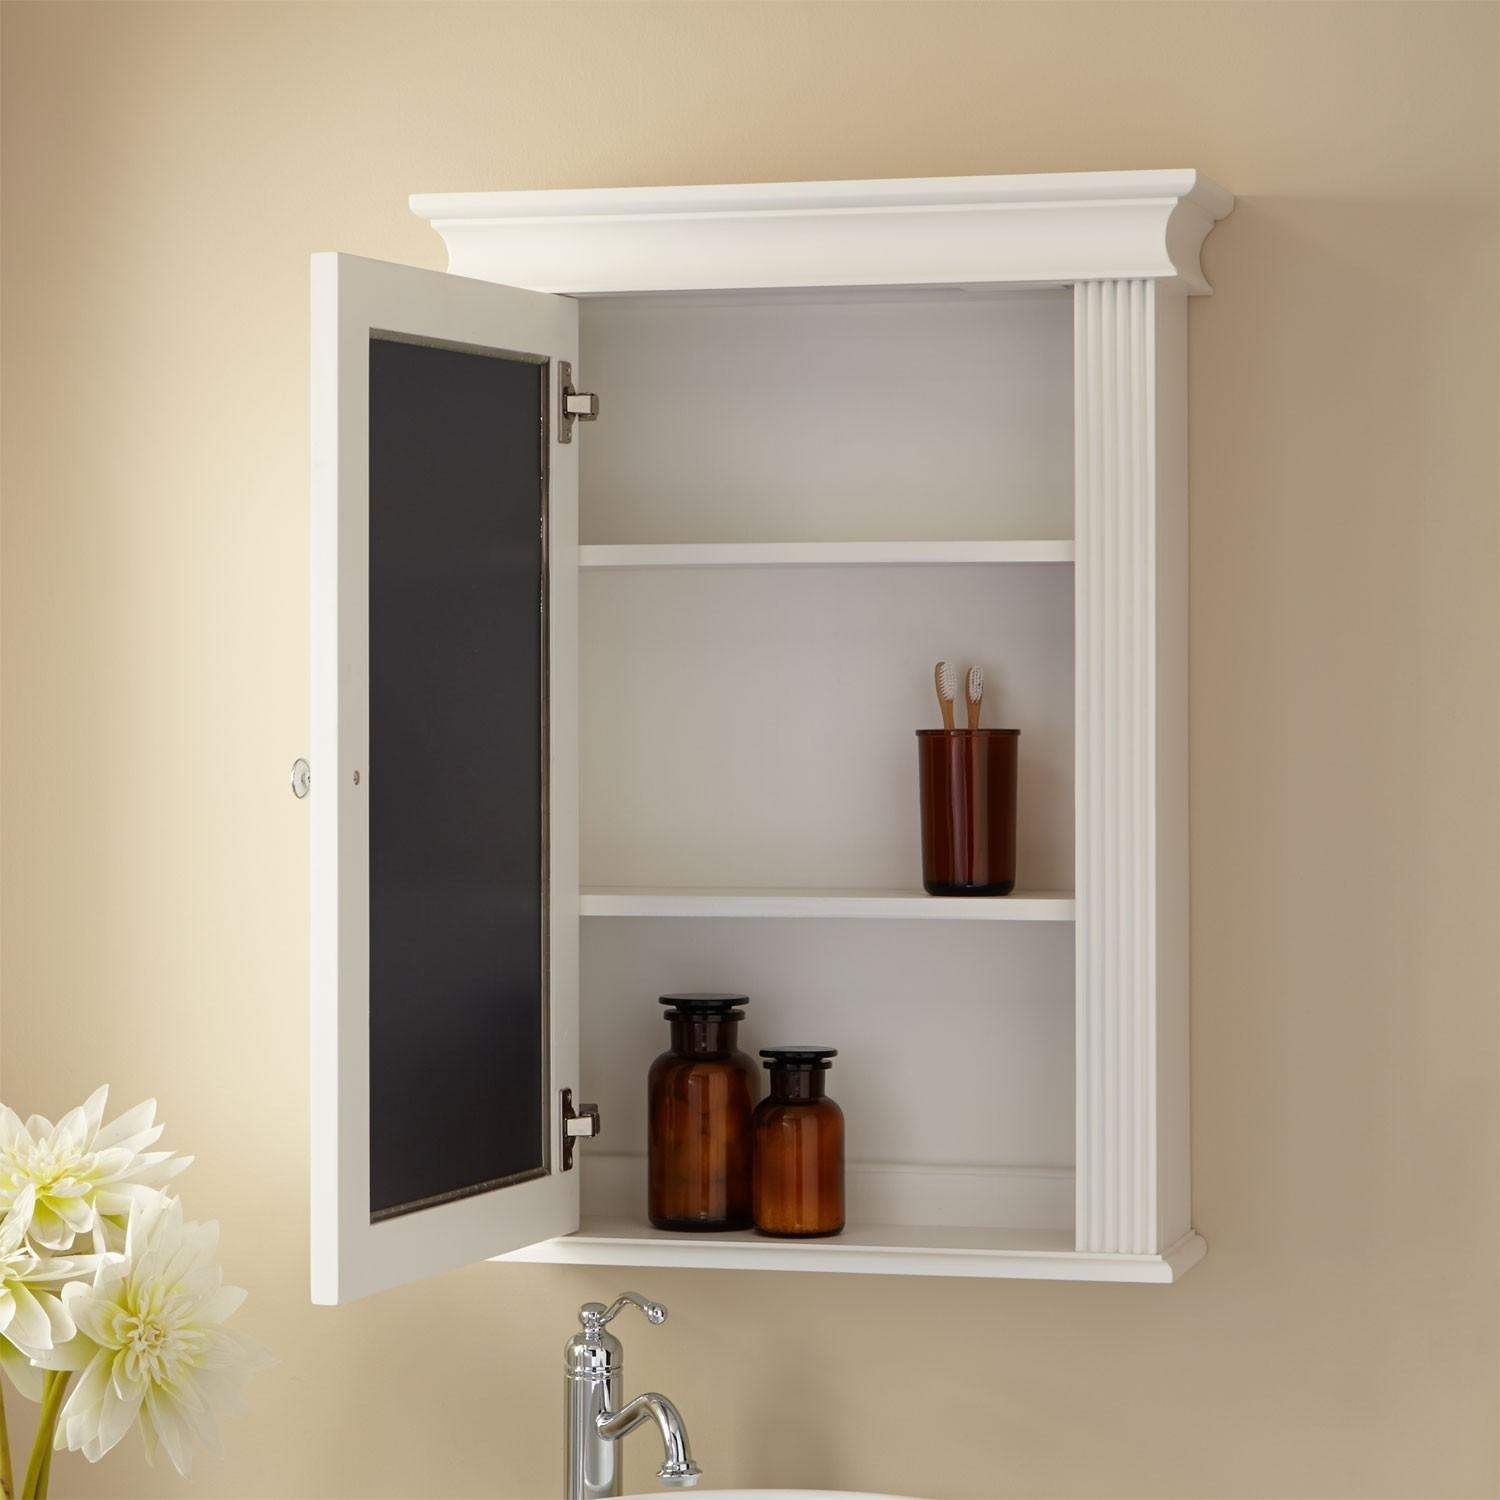 Innovative White Medicine Cabinet With Mirror | All Home Decorations In Bathroom Medicine Cabinets And Mirrors (Image 14 of 20)